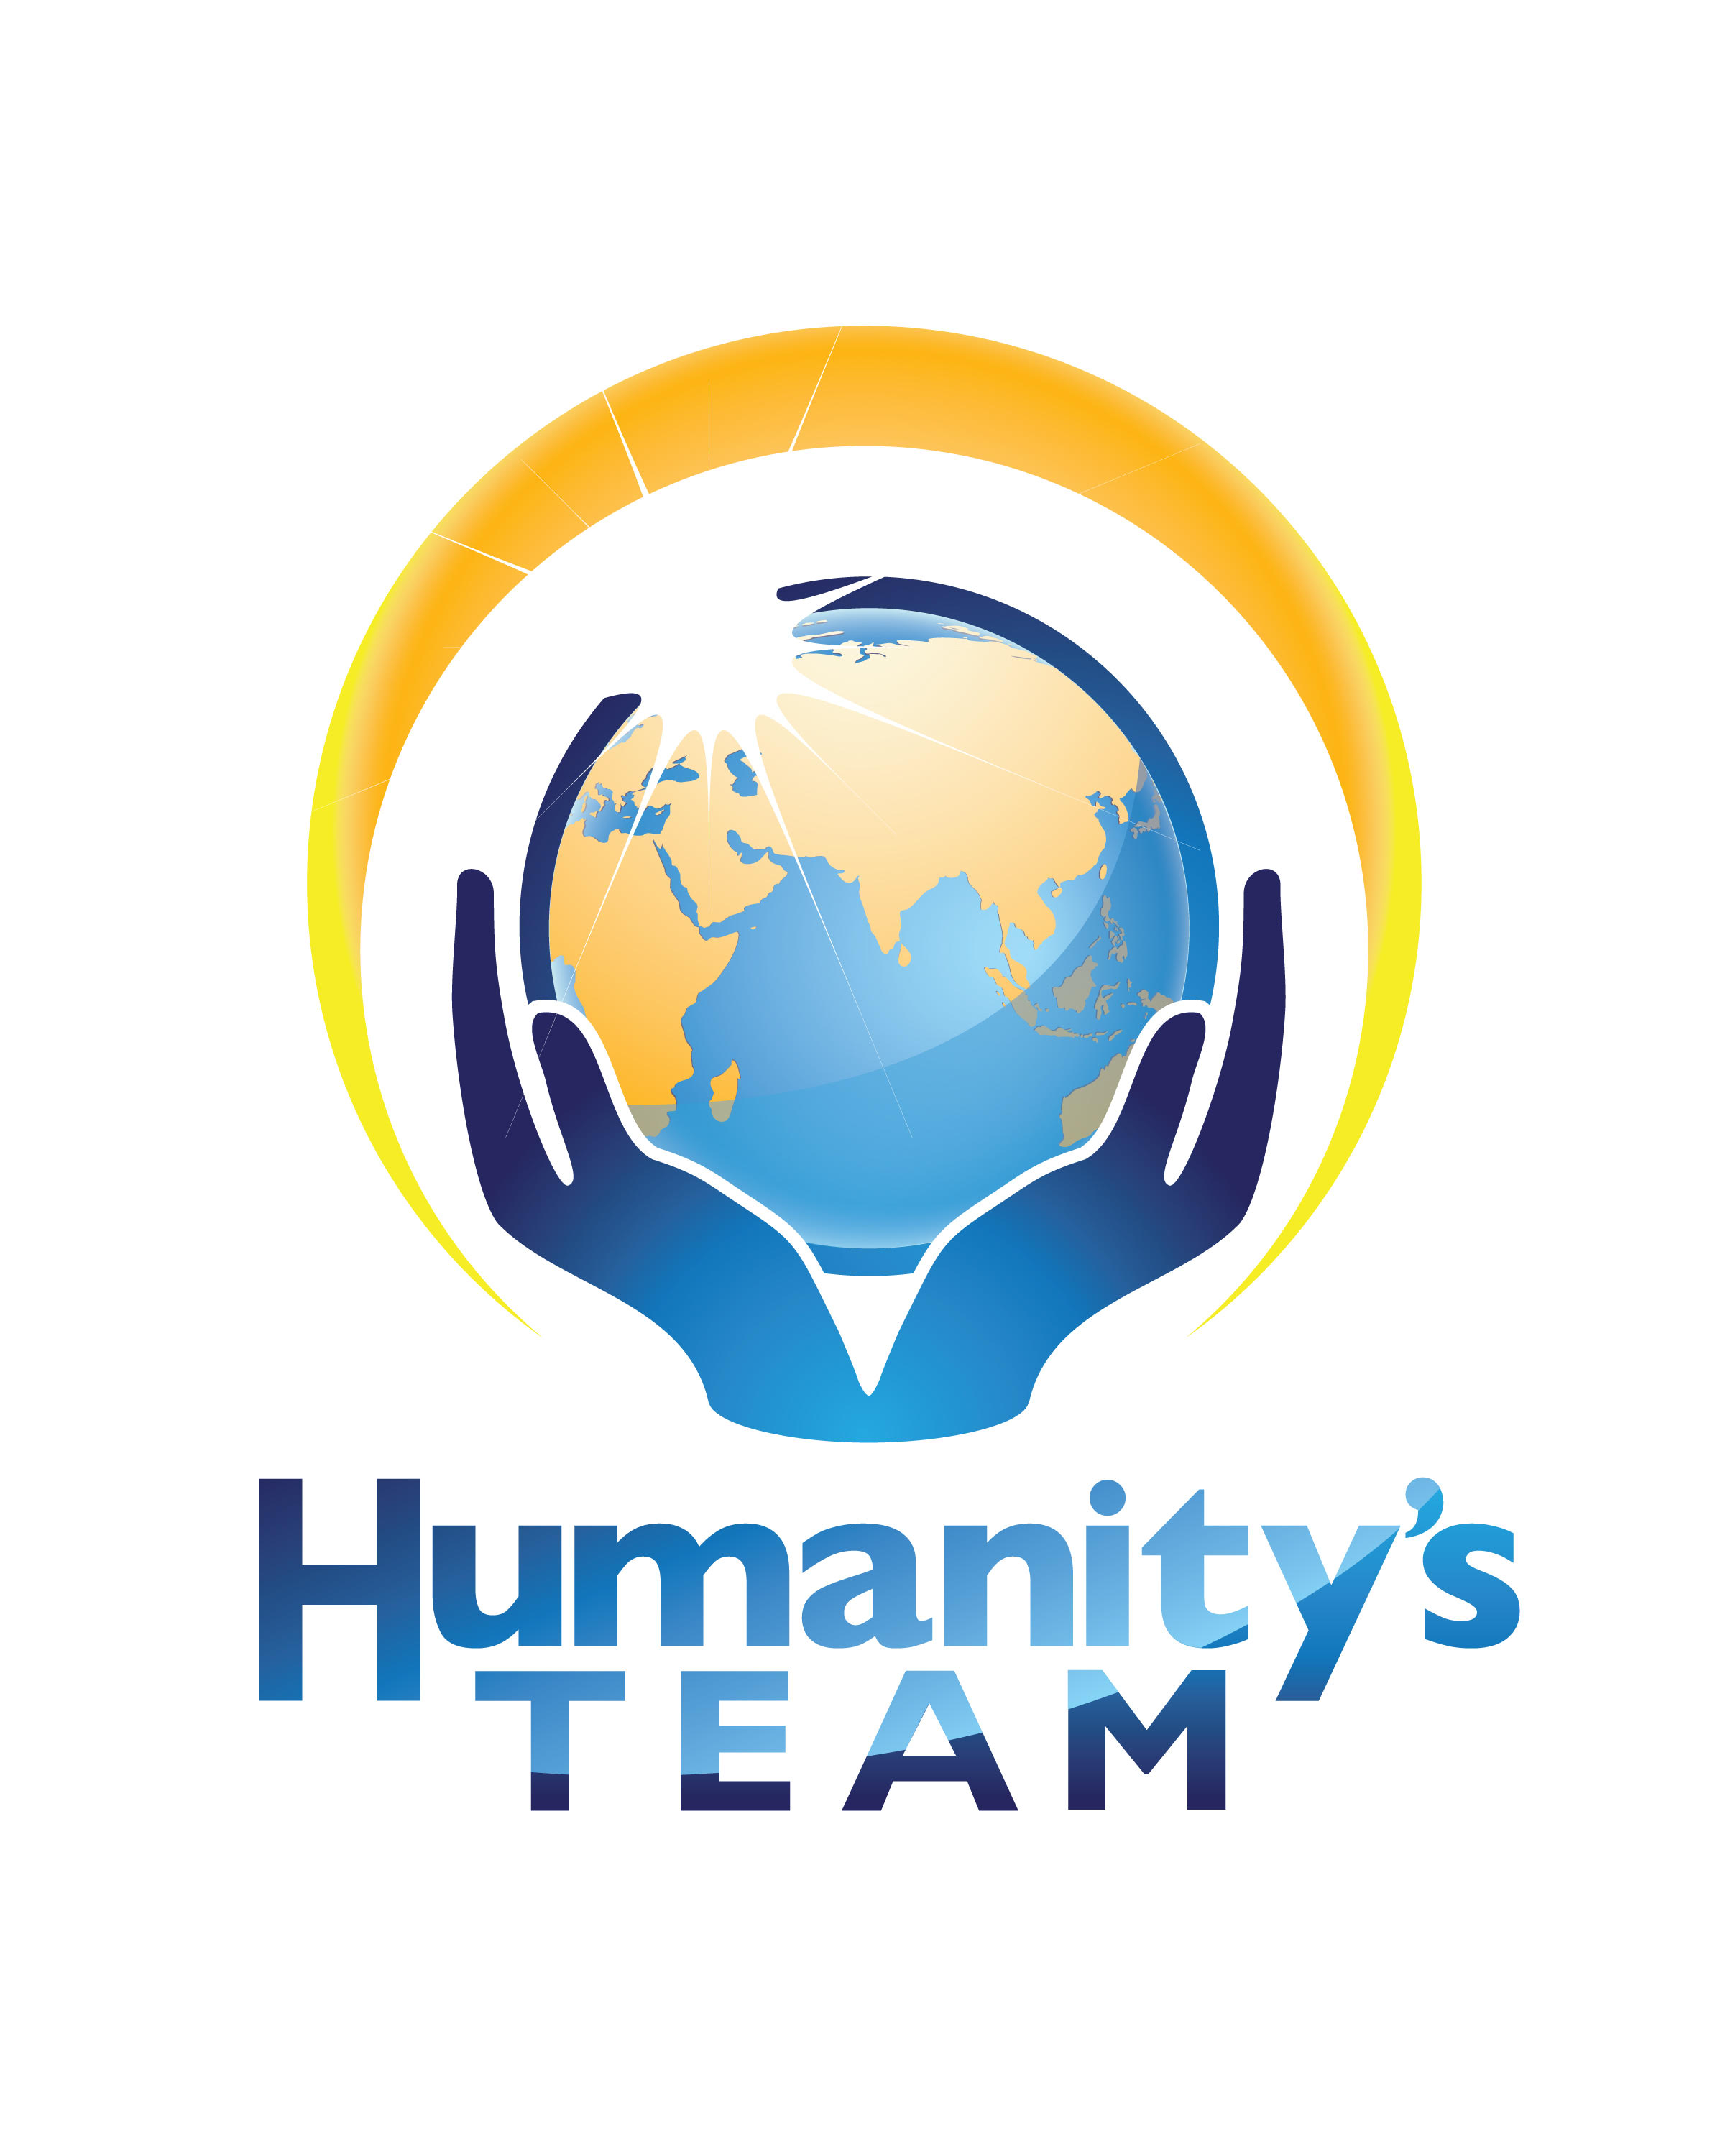 Humanity's Team is an international spiritual movement whose purpose is to communicate and demonstrate the timeless truth that We Are All One.